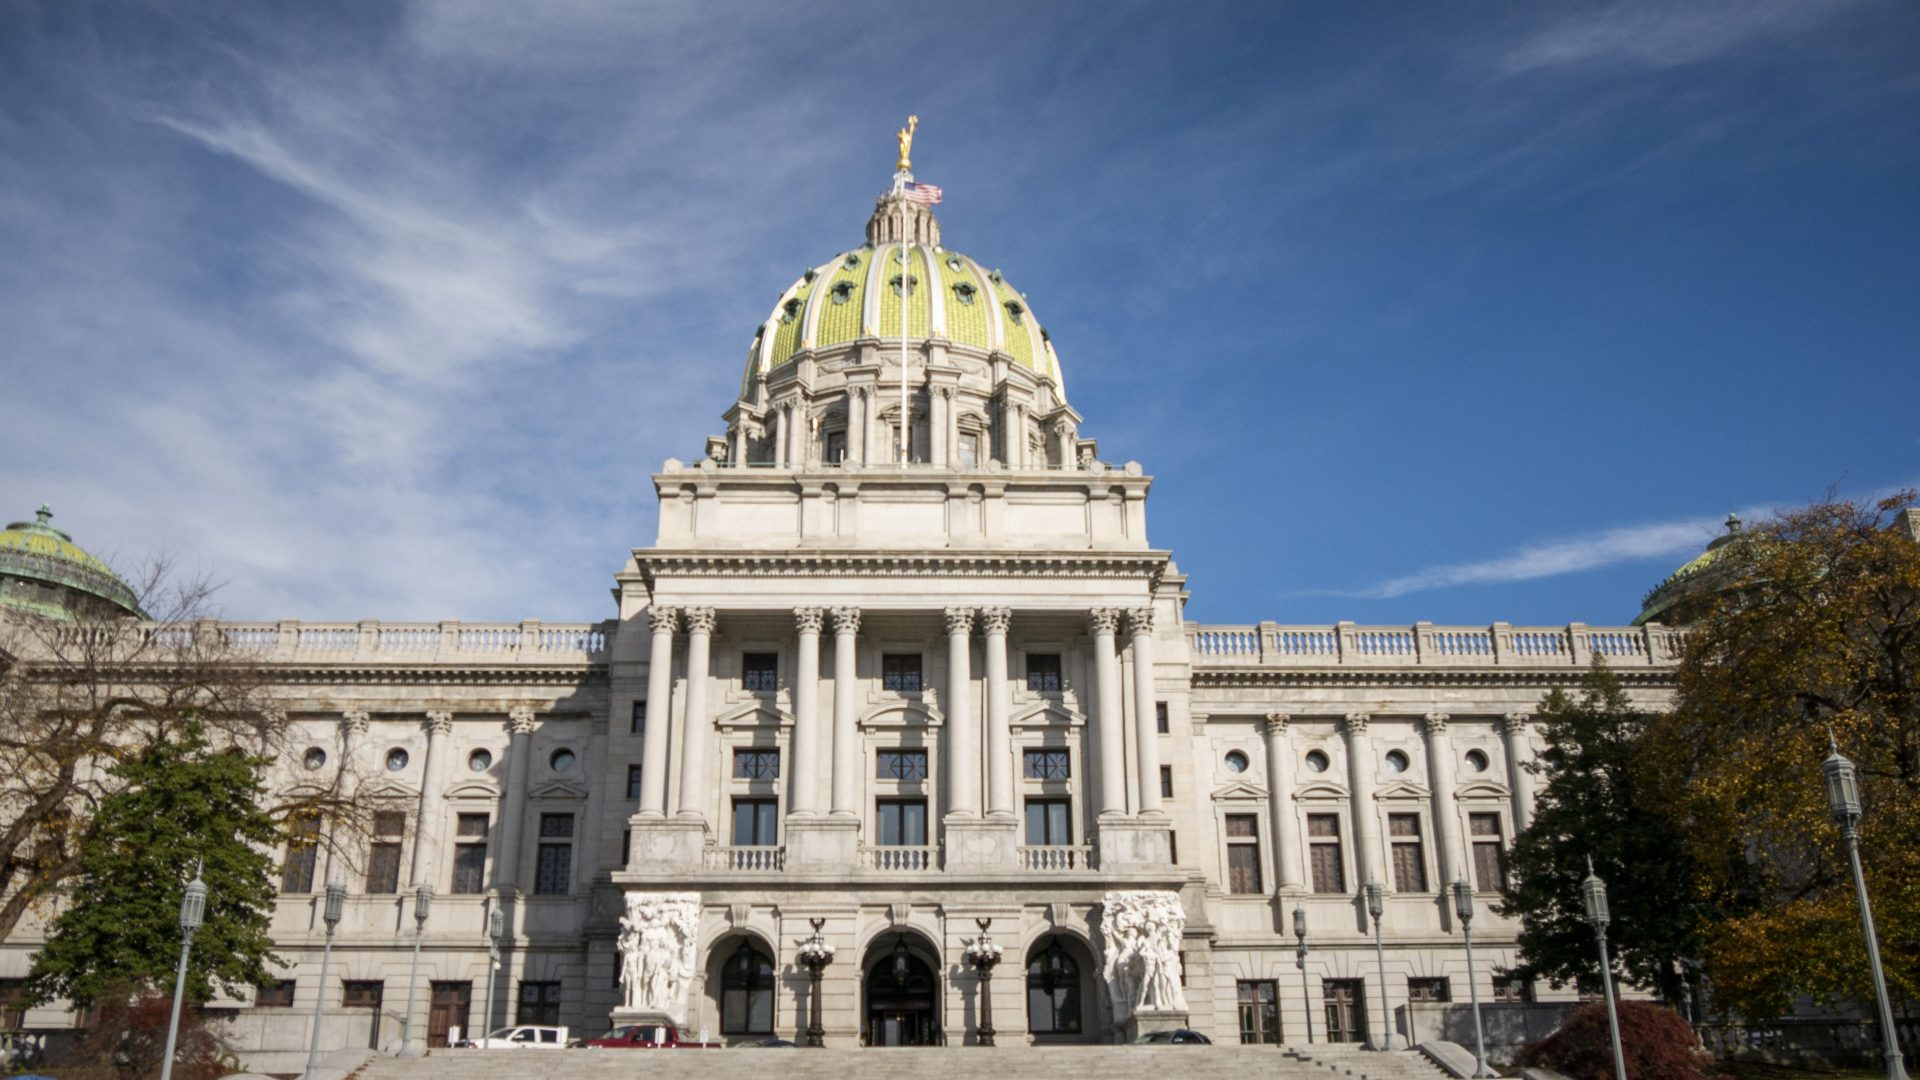 Pa. House adds mandatory minimums to high-profile justice reform bills